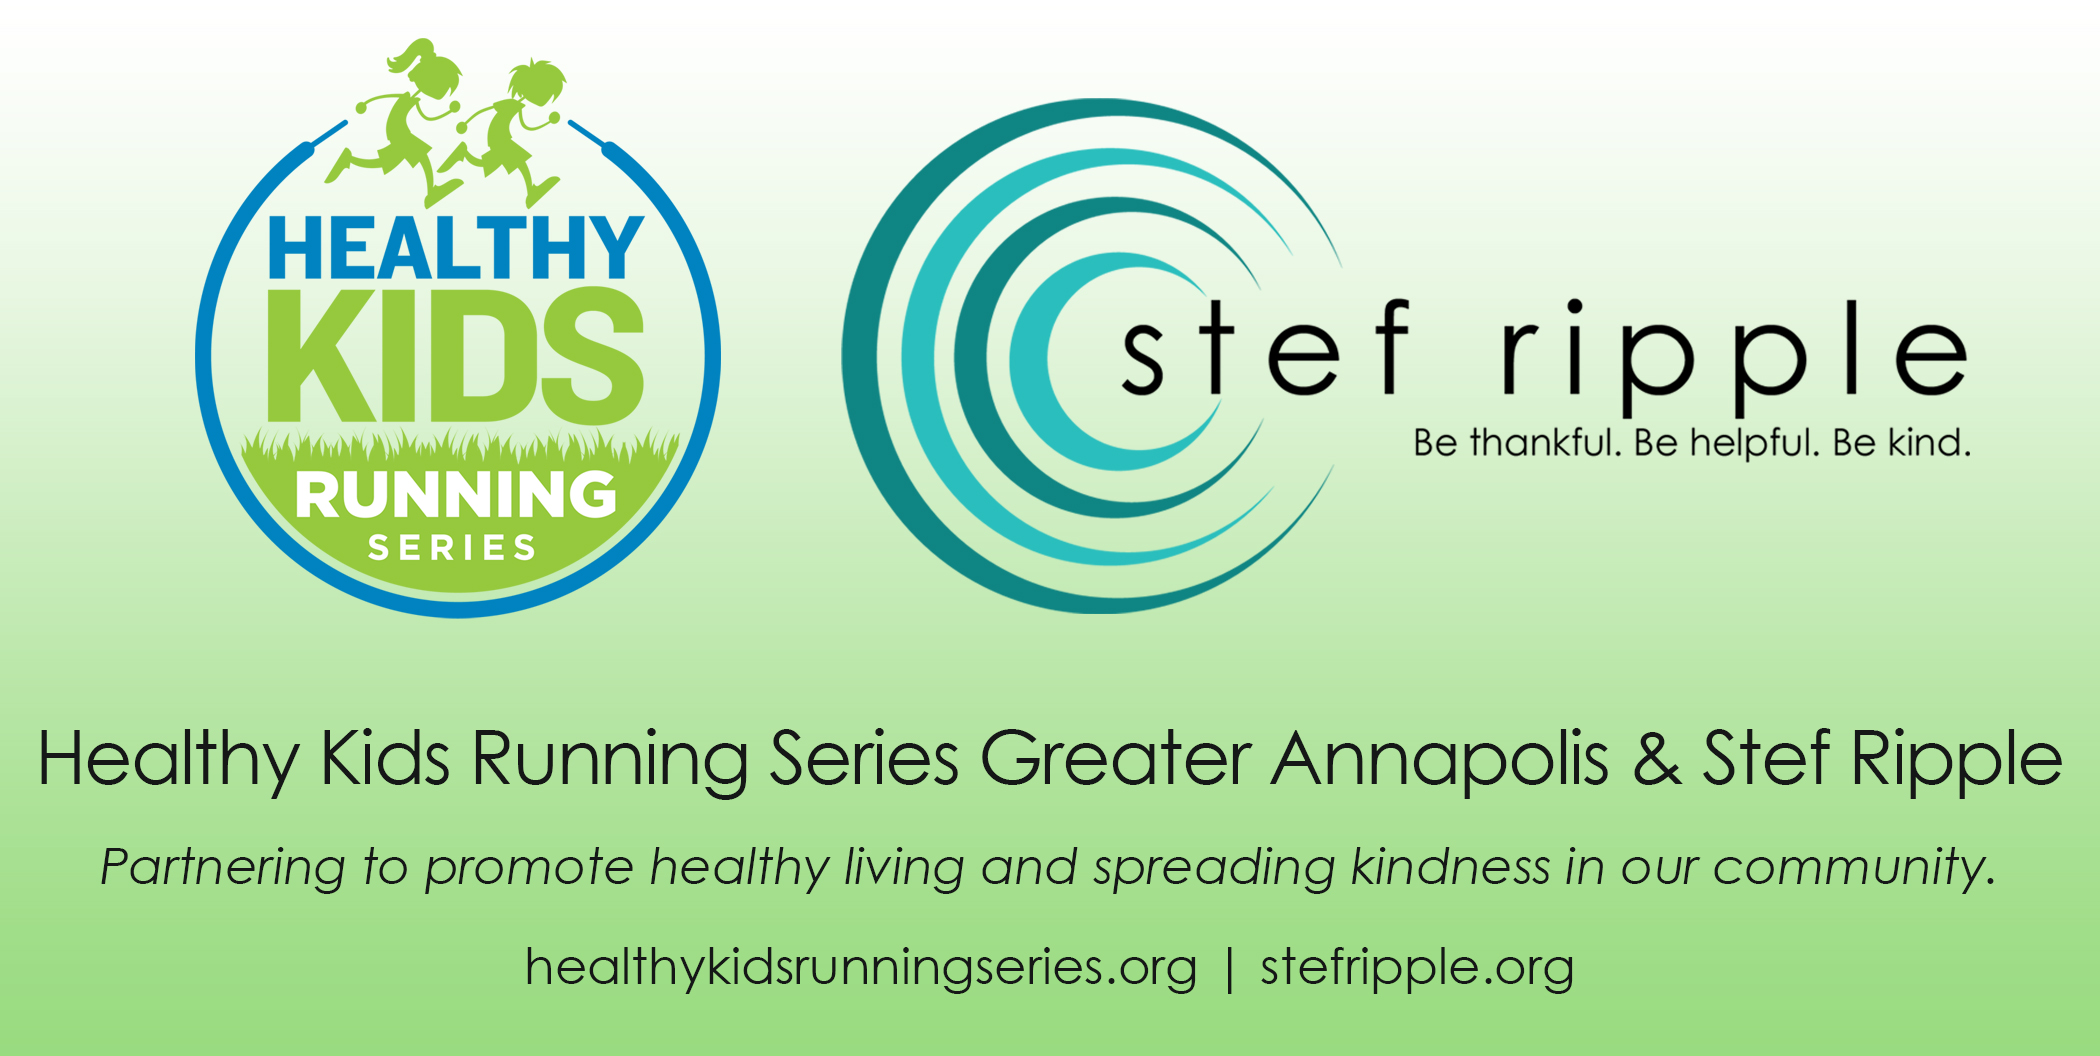 Healthy Kids Running Series Partnership